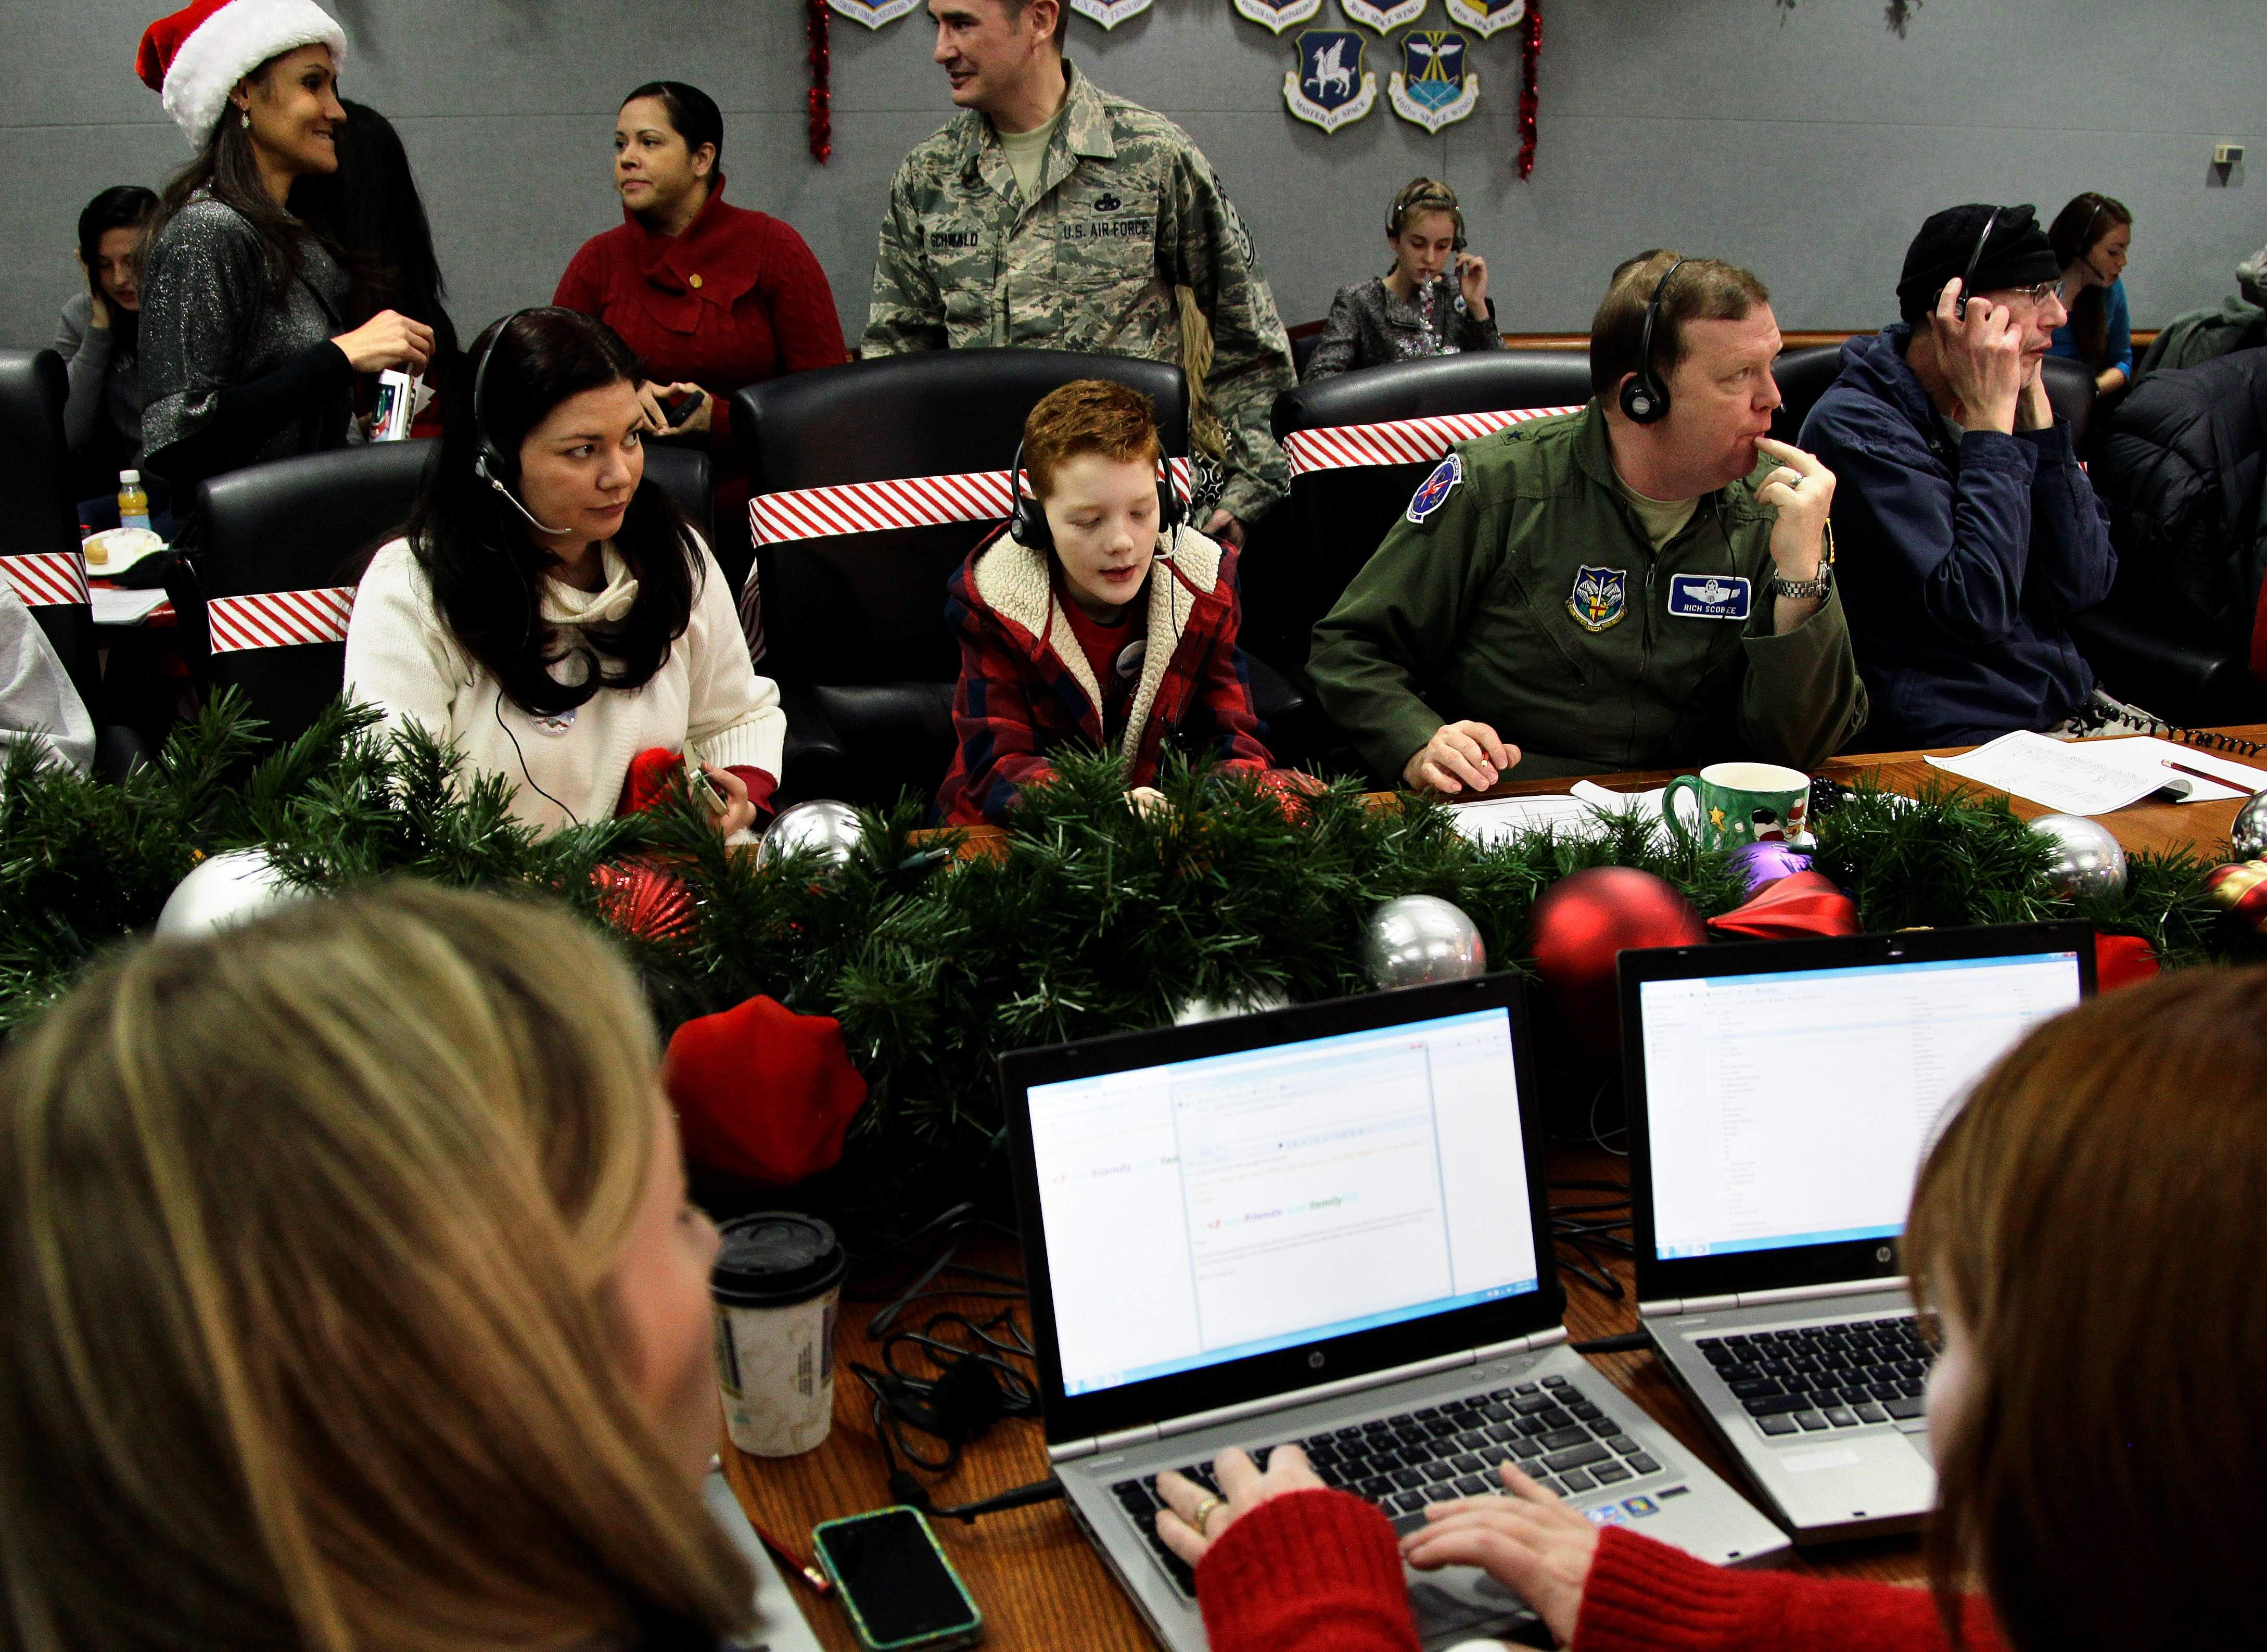 Wanna know when Santa Claus is comin\' to town? Ask NORAD